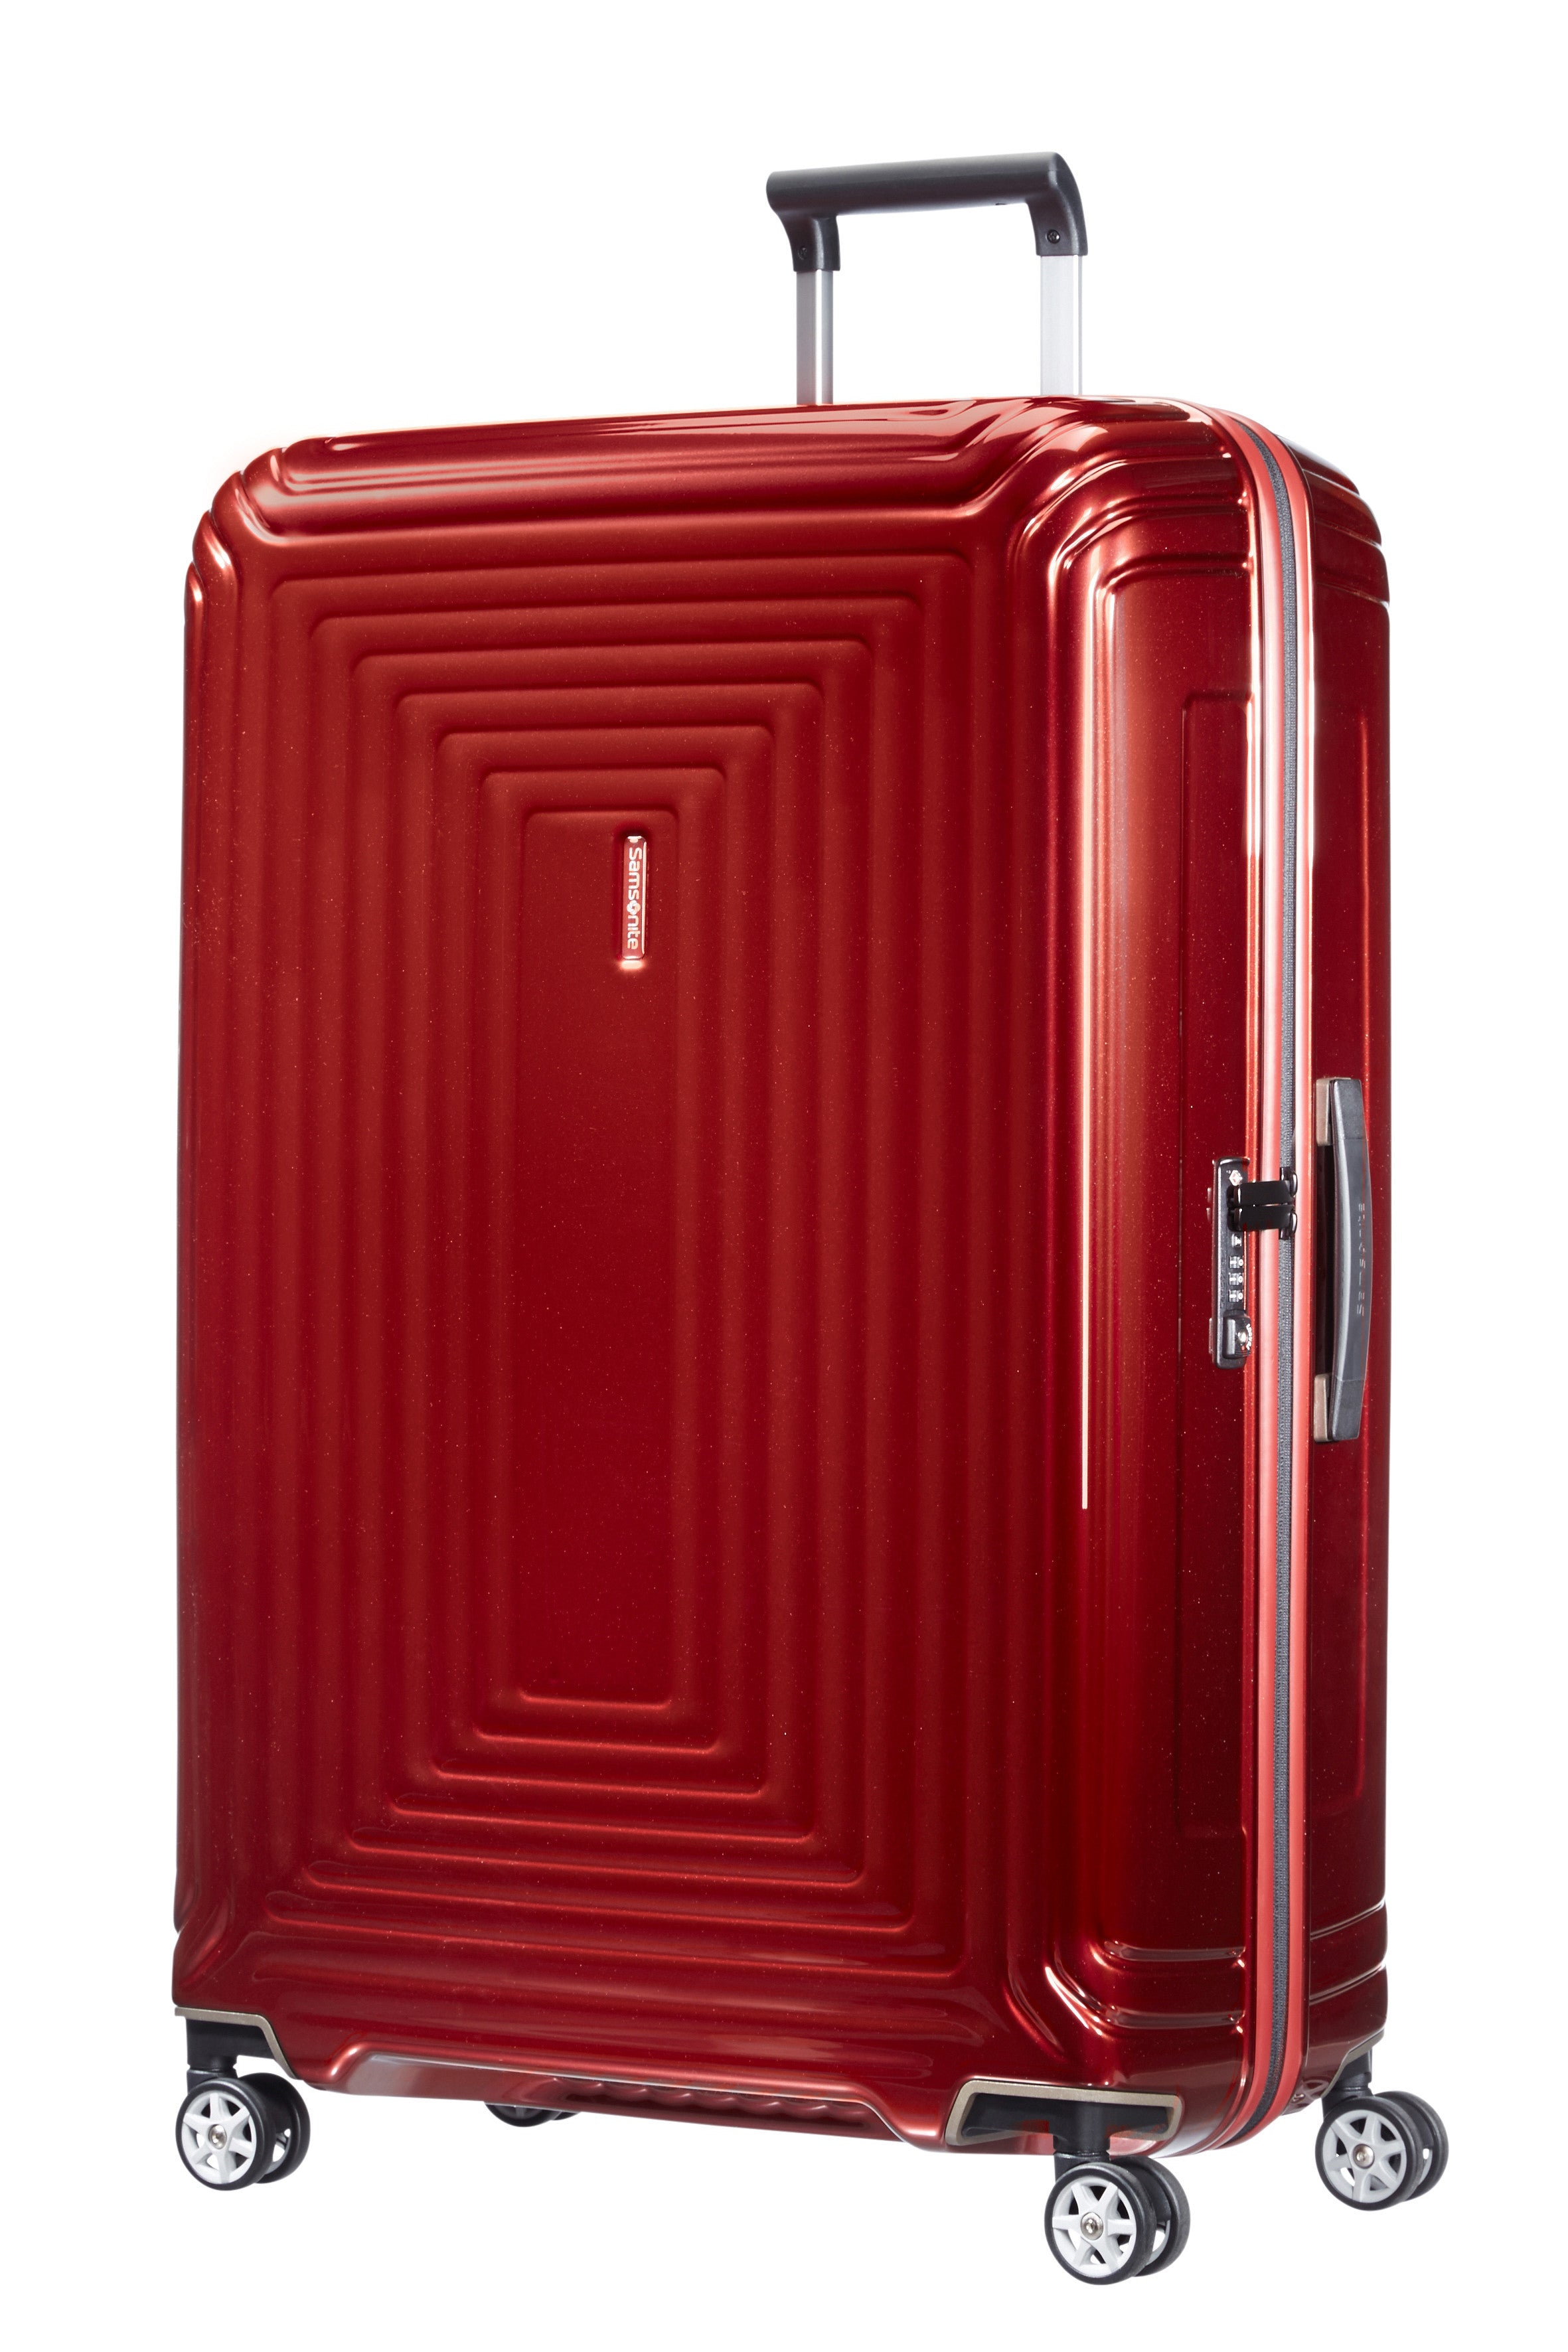 Samsonite Neopulse Spinner 81cm Metallic Rood